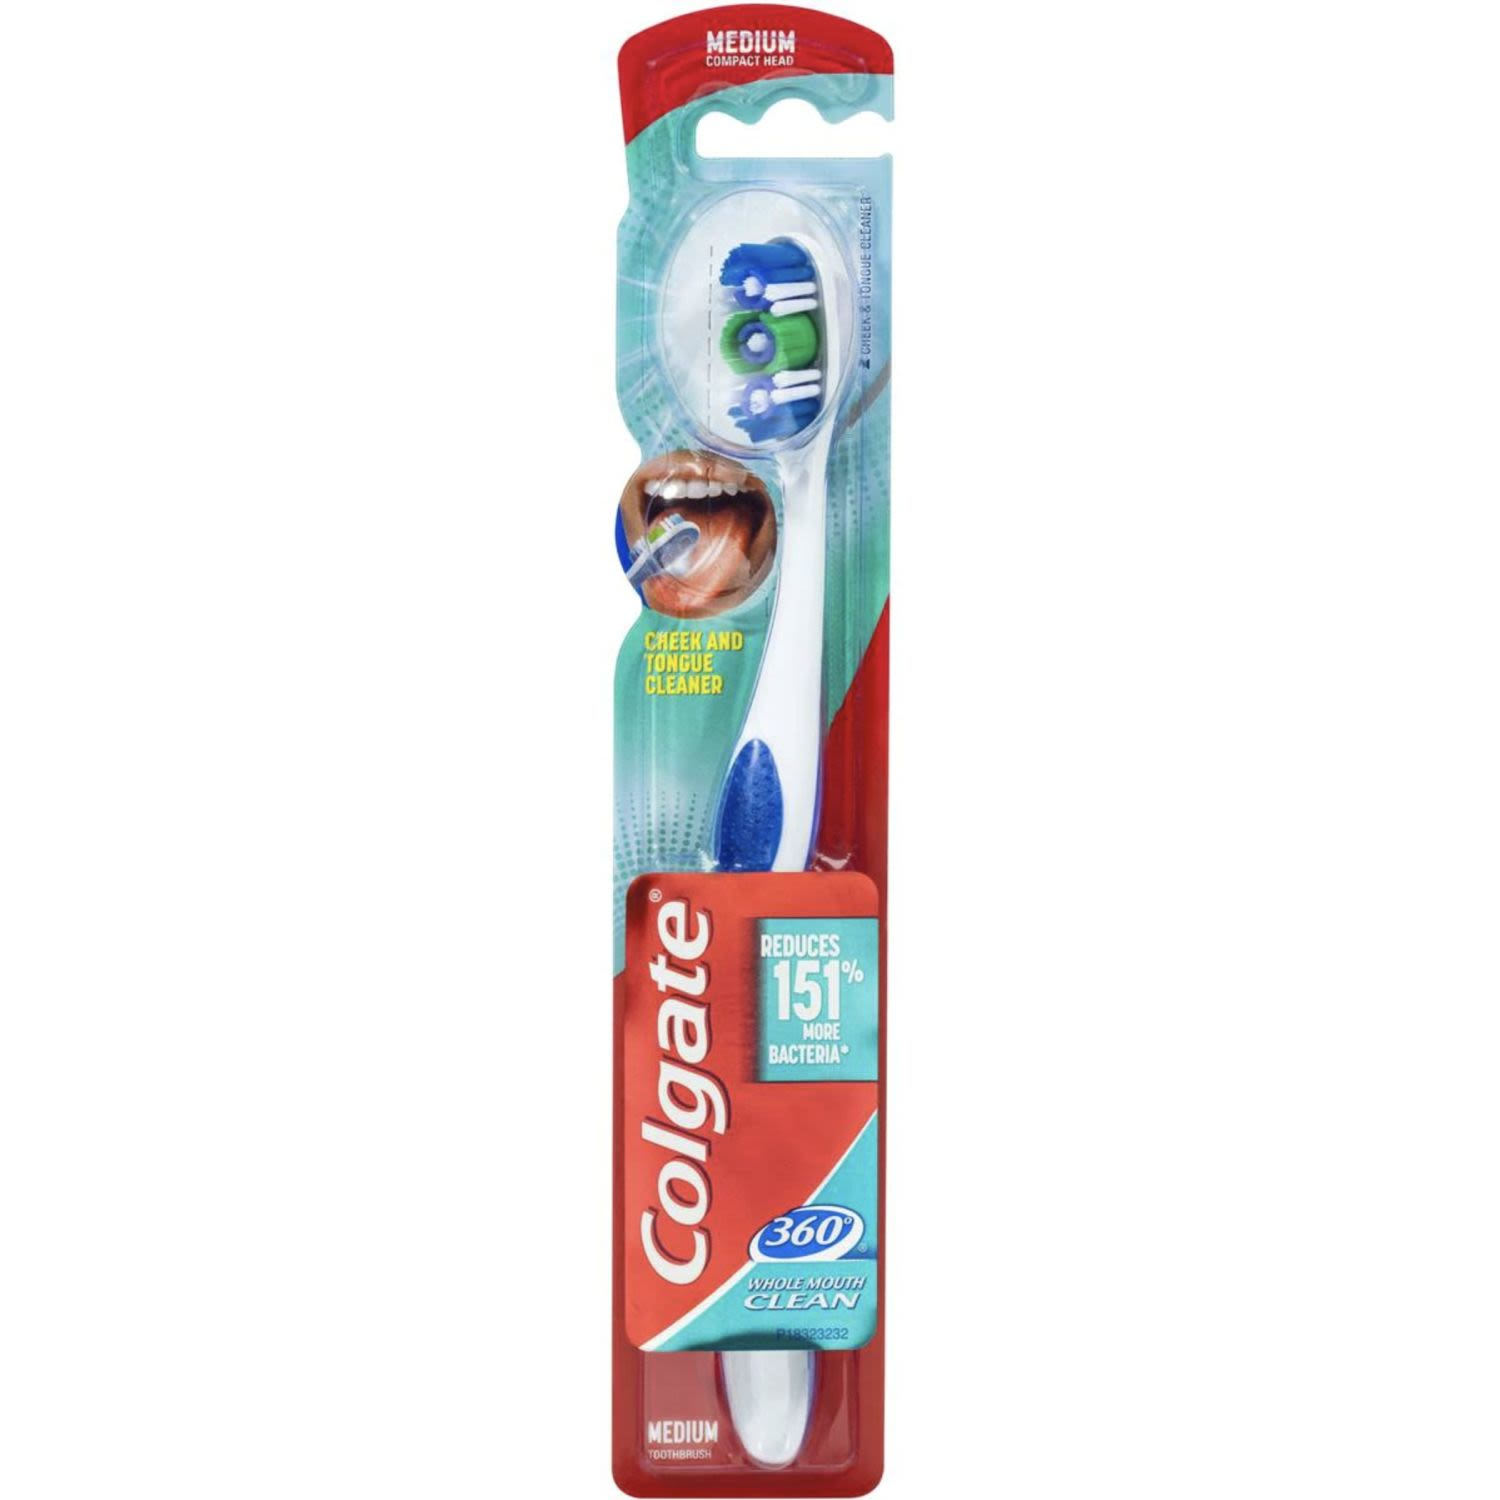 Colgate 360 Degrees Whole Mouth Clean Compact Head Toothbrush Medium, 1 Each